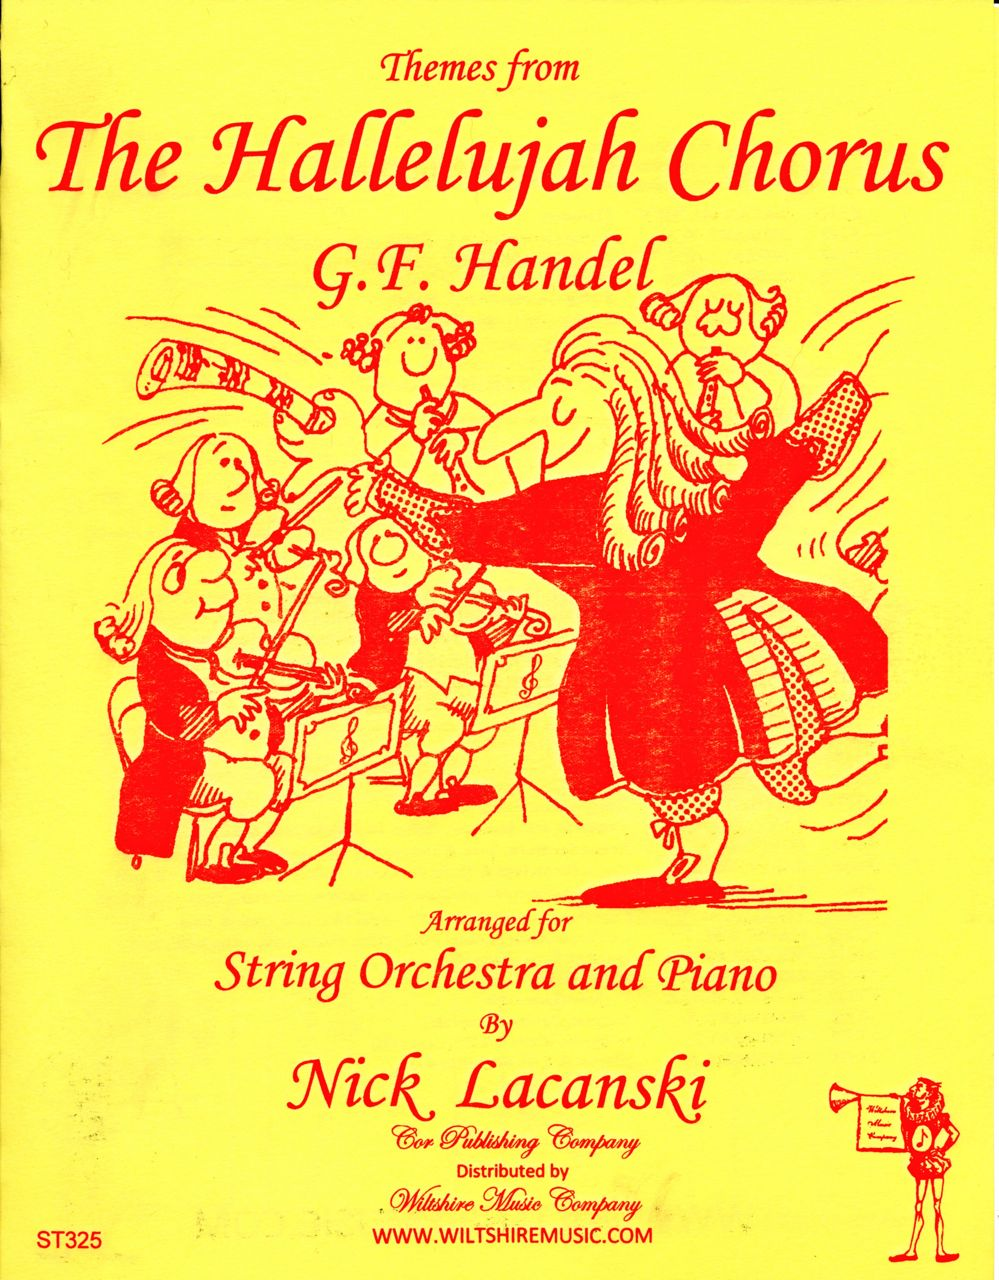 Themes from the Hallelujah Chorus, Handel ( Lacanski)